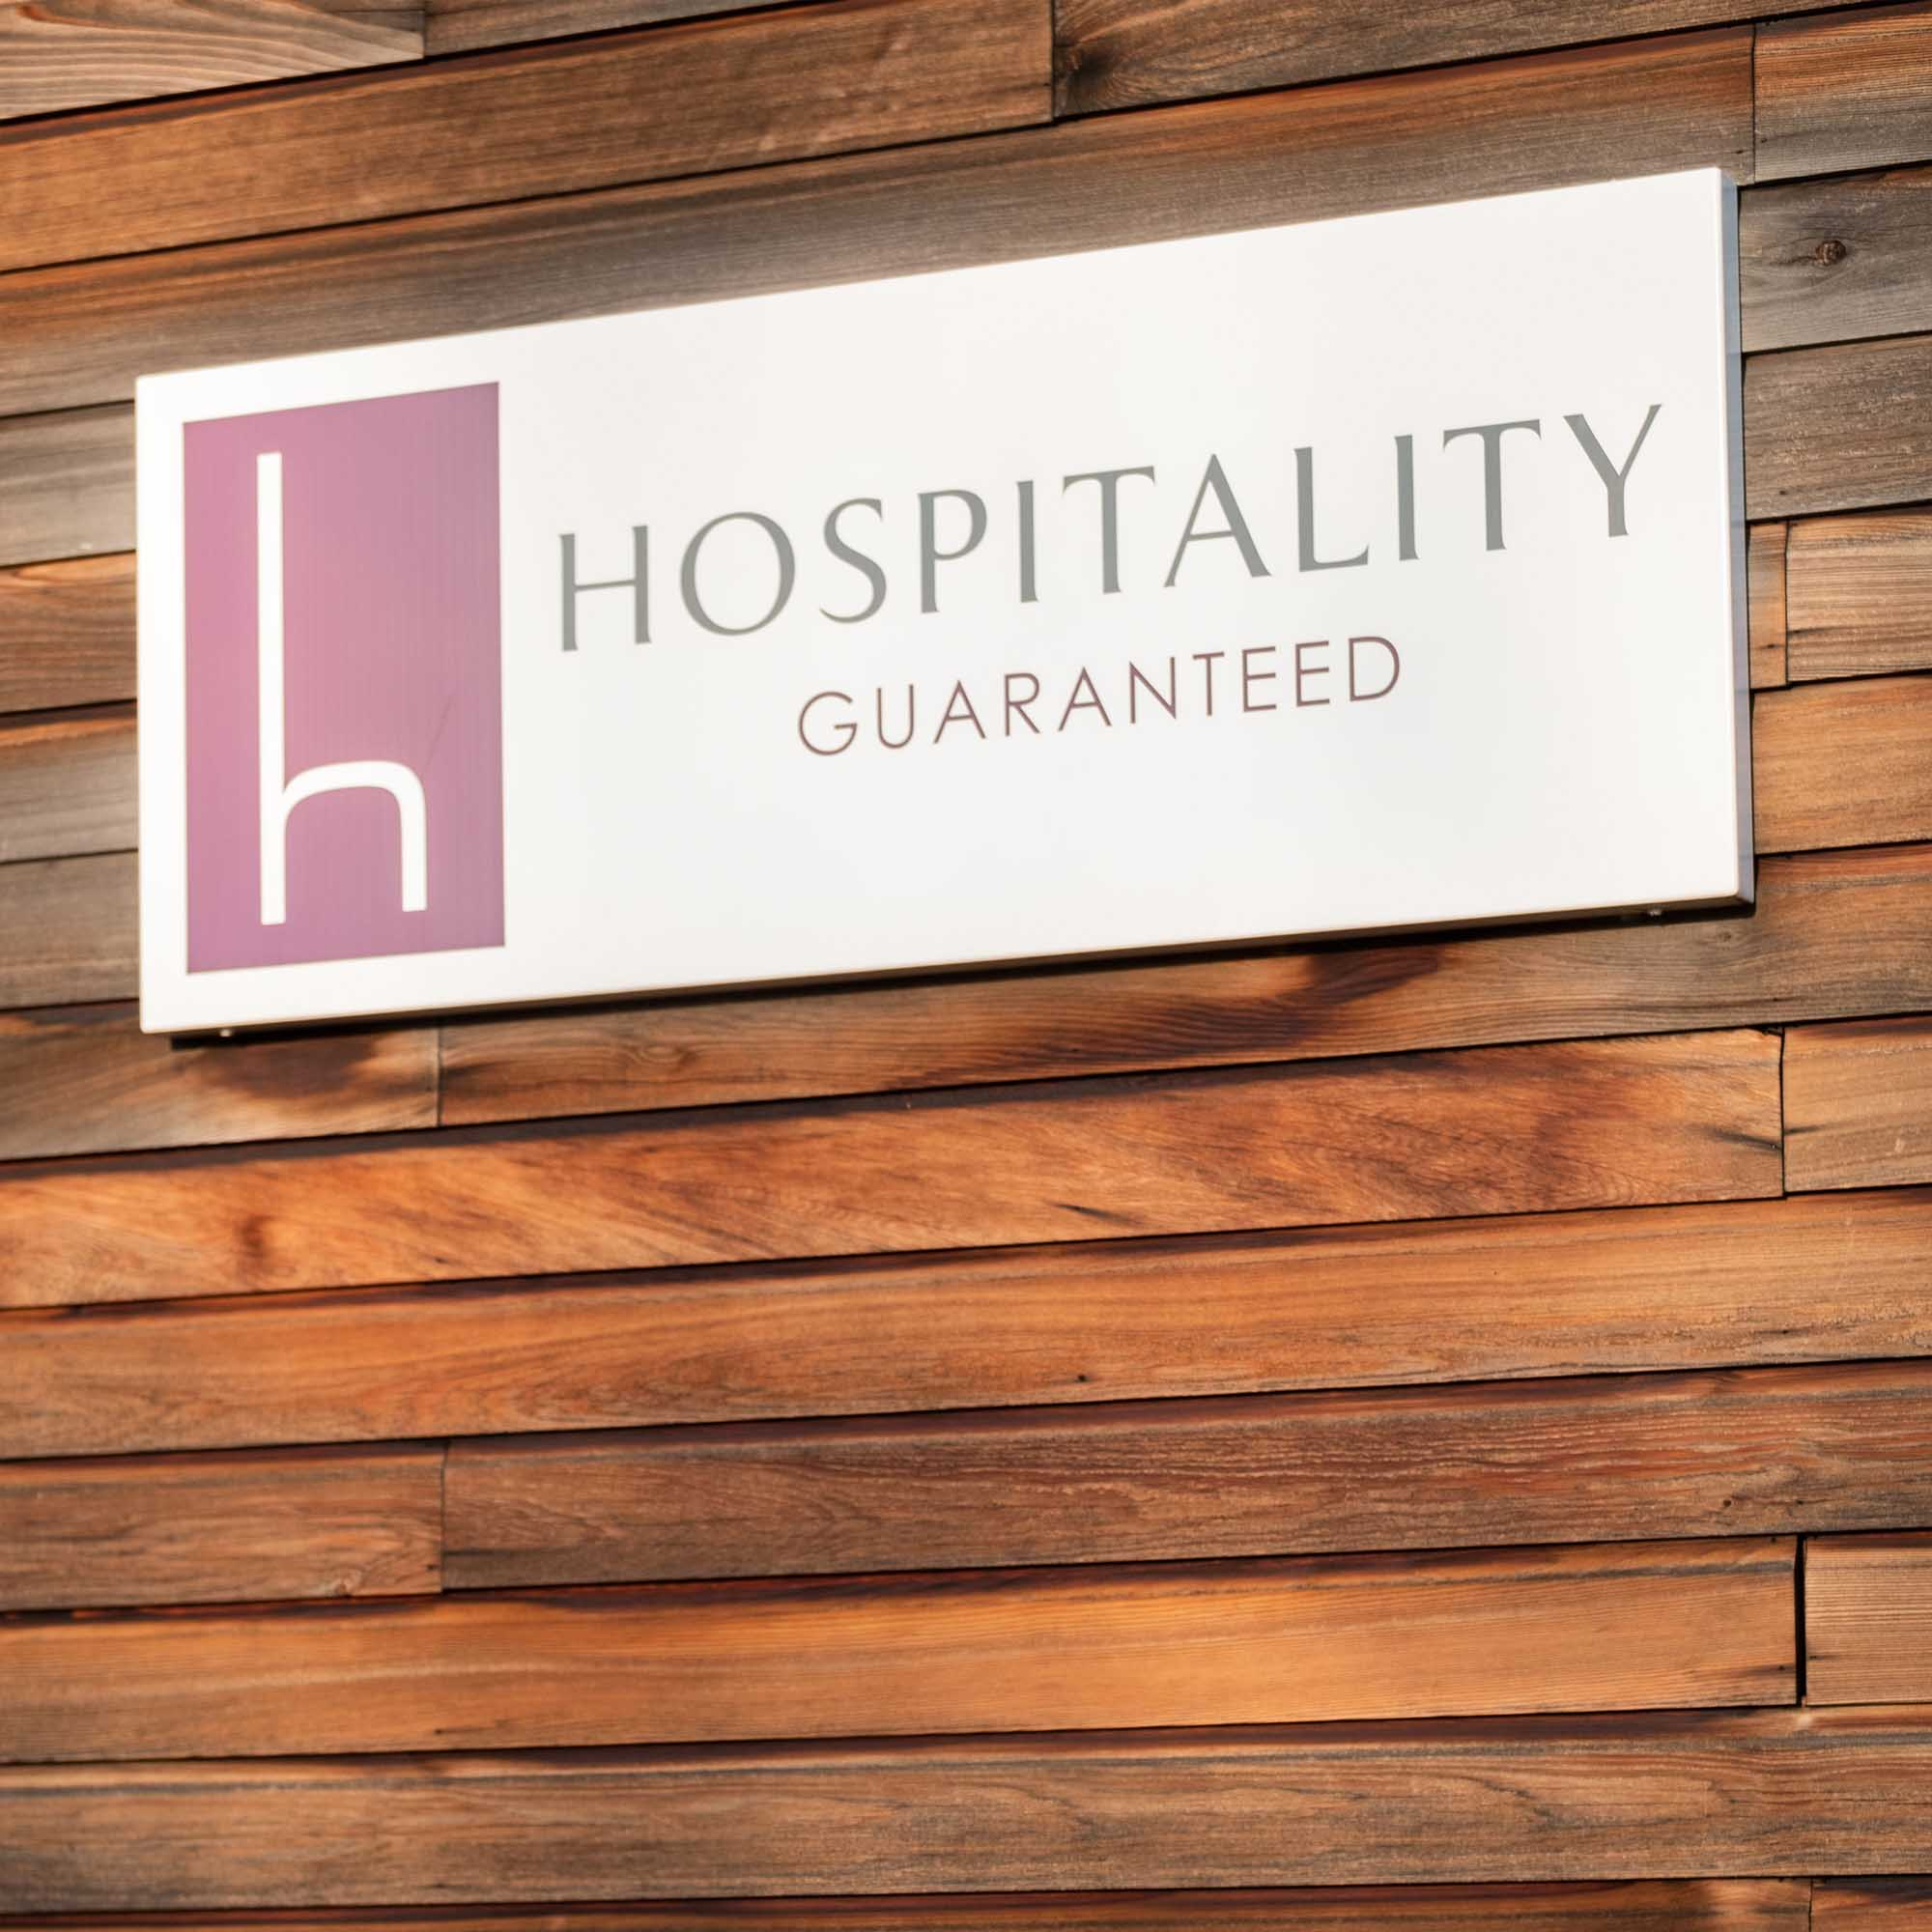 Hospitality Guaranteed